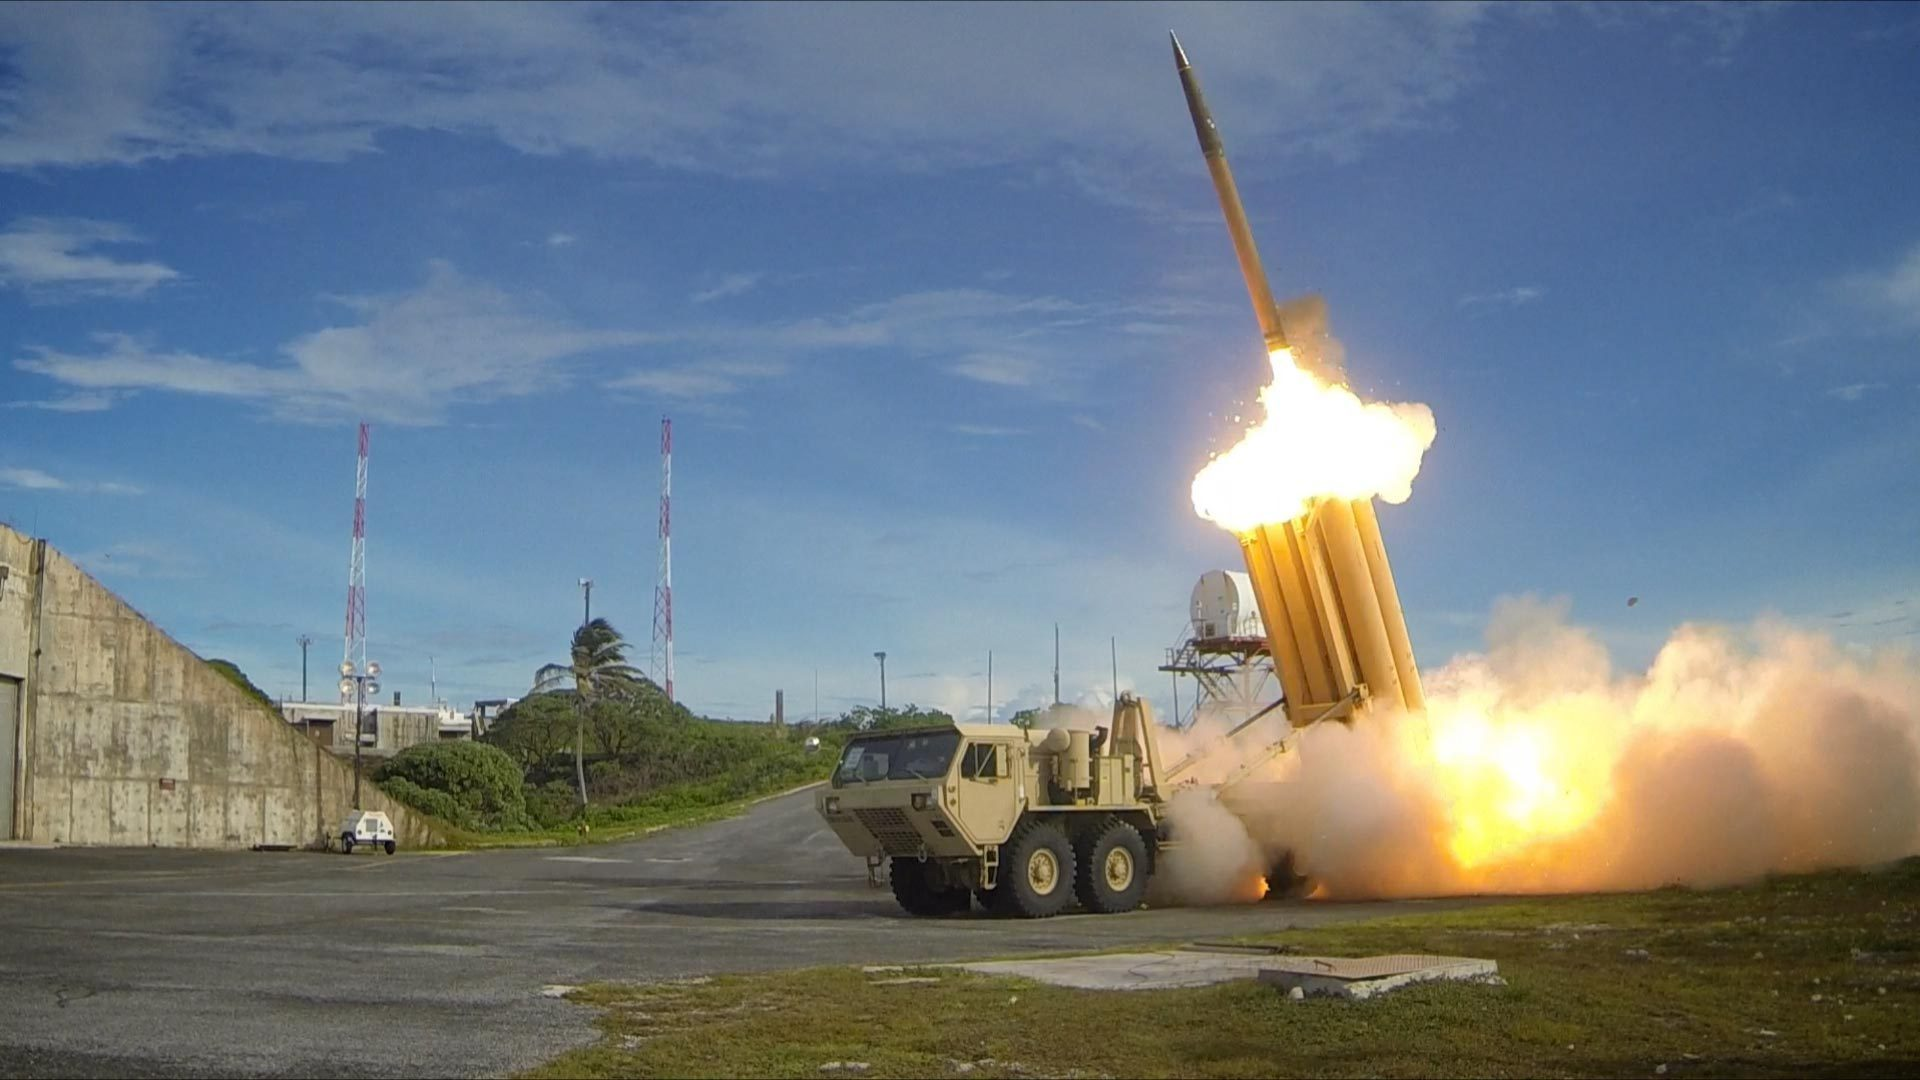 The first of two Terminal High Altitude Area Defense (THAAD) interceptors is launched during a successful intercept test.